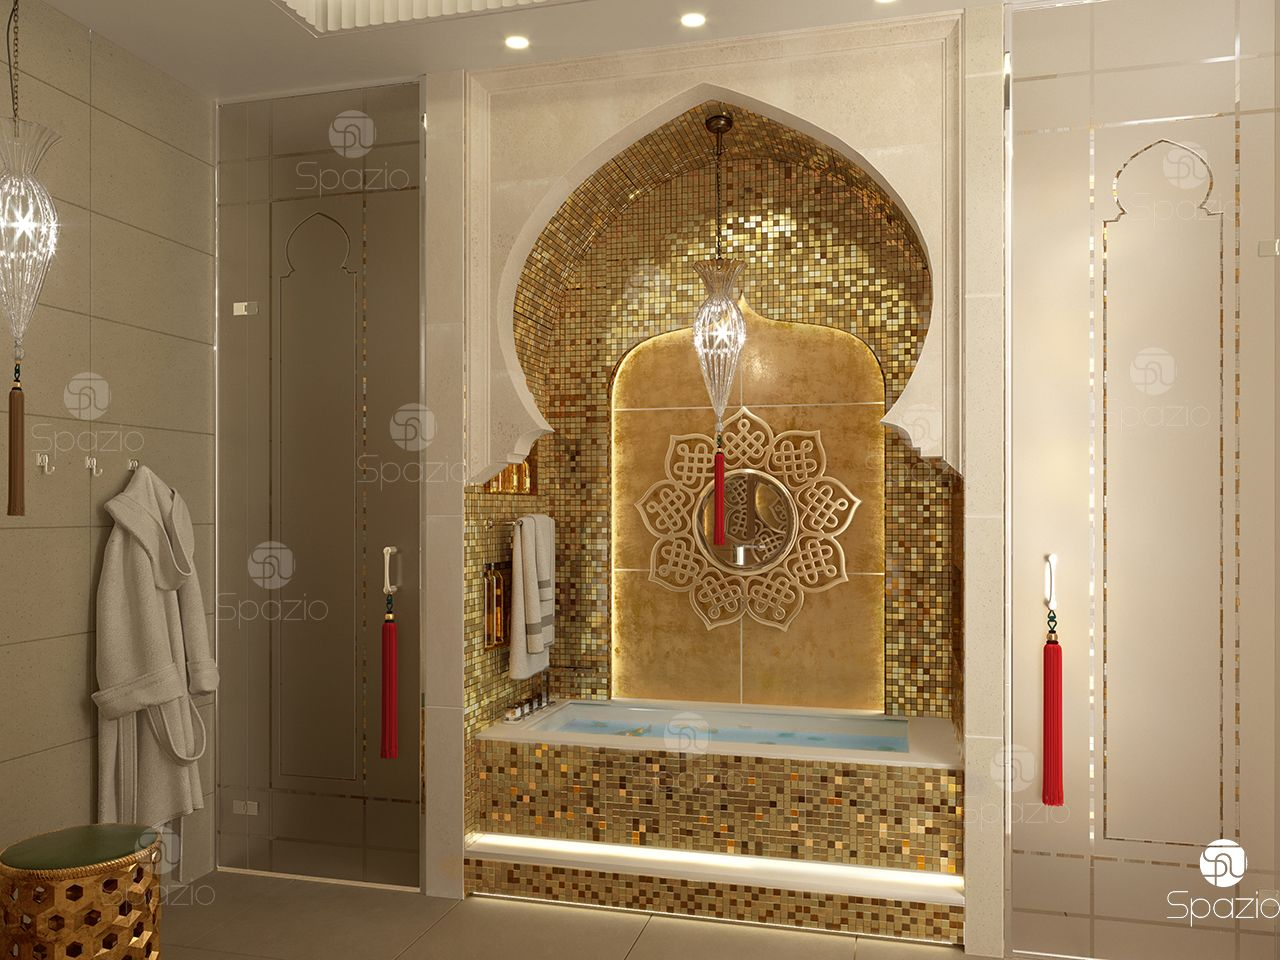 Moorish bathroom decoration solution.